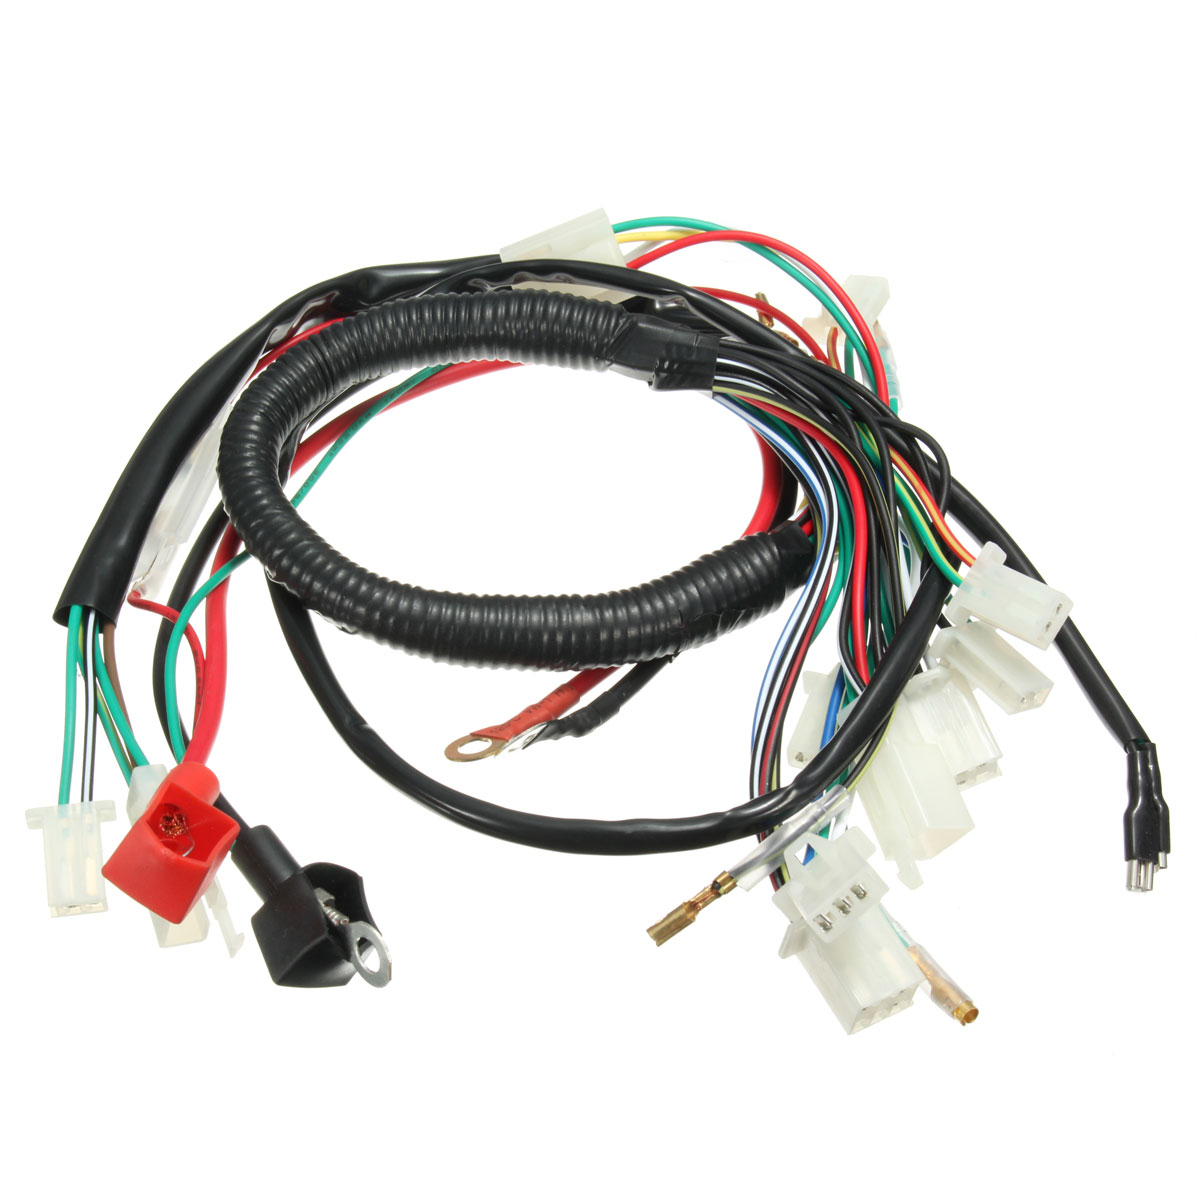 Wiring Harness Machine Electric Start Wiring Loom Harness